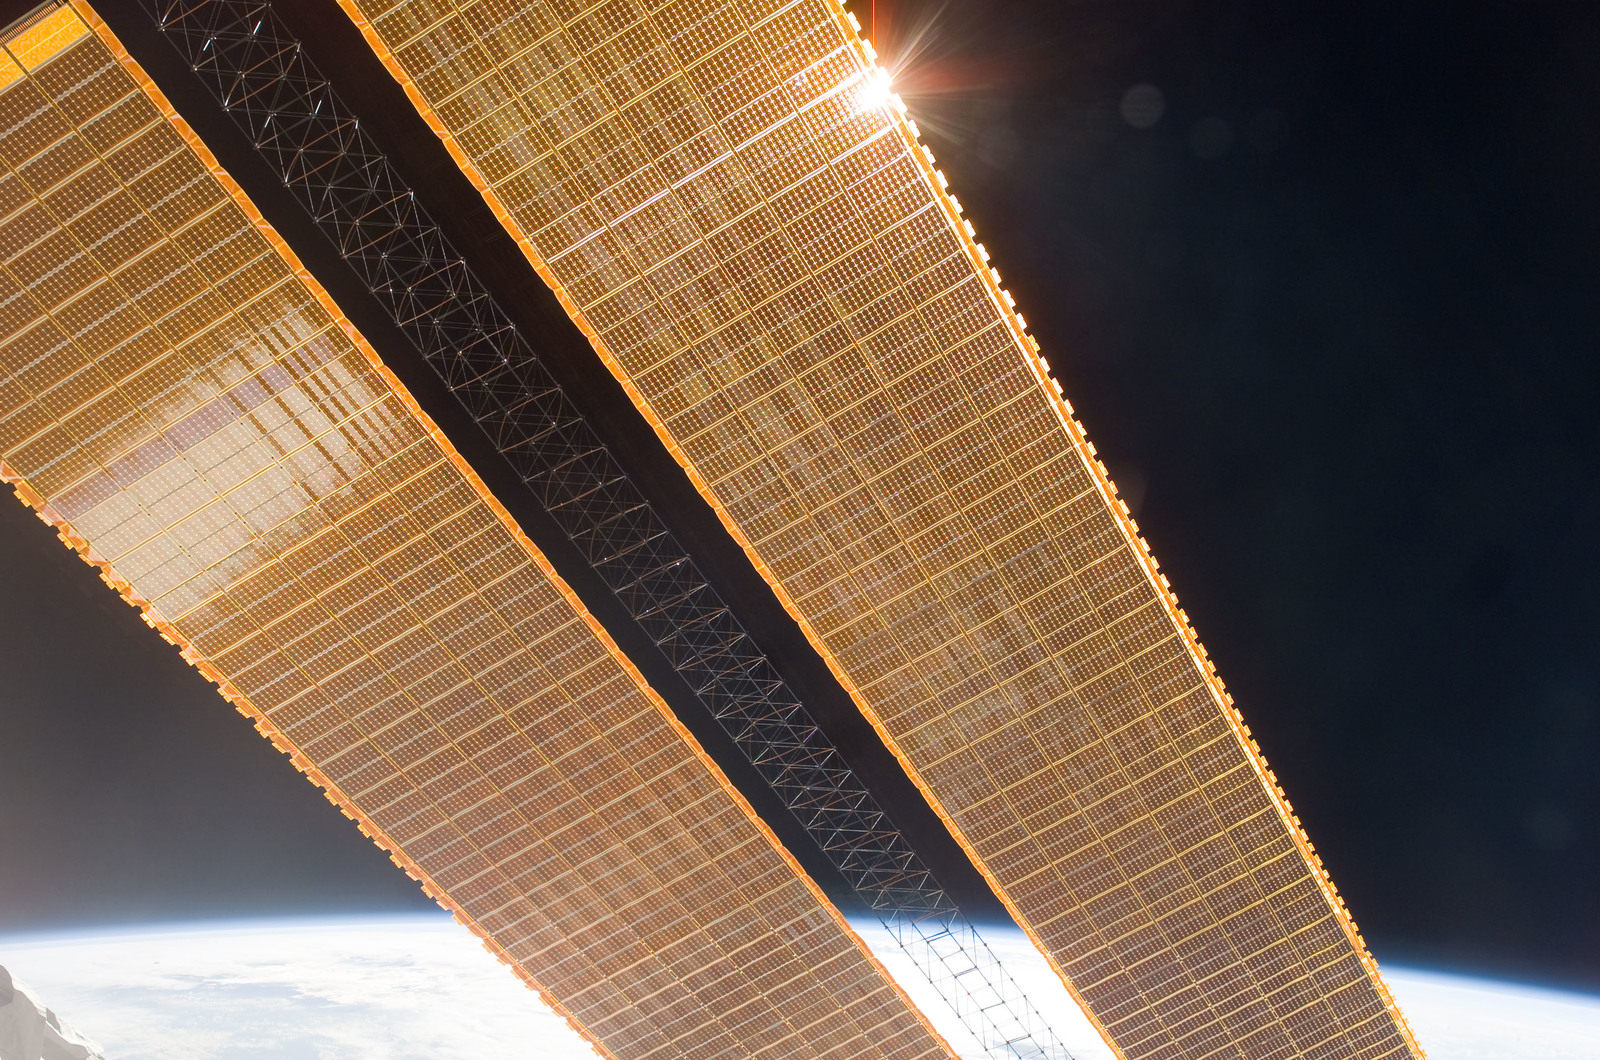 S115E06051 - STS-115 - Second set of solar arrays on the ISS during Expedition 13 / STS-115 Joint Operations